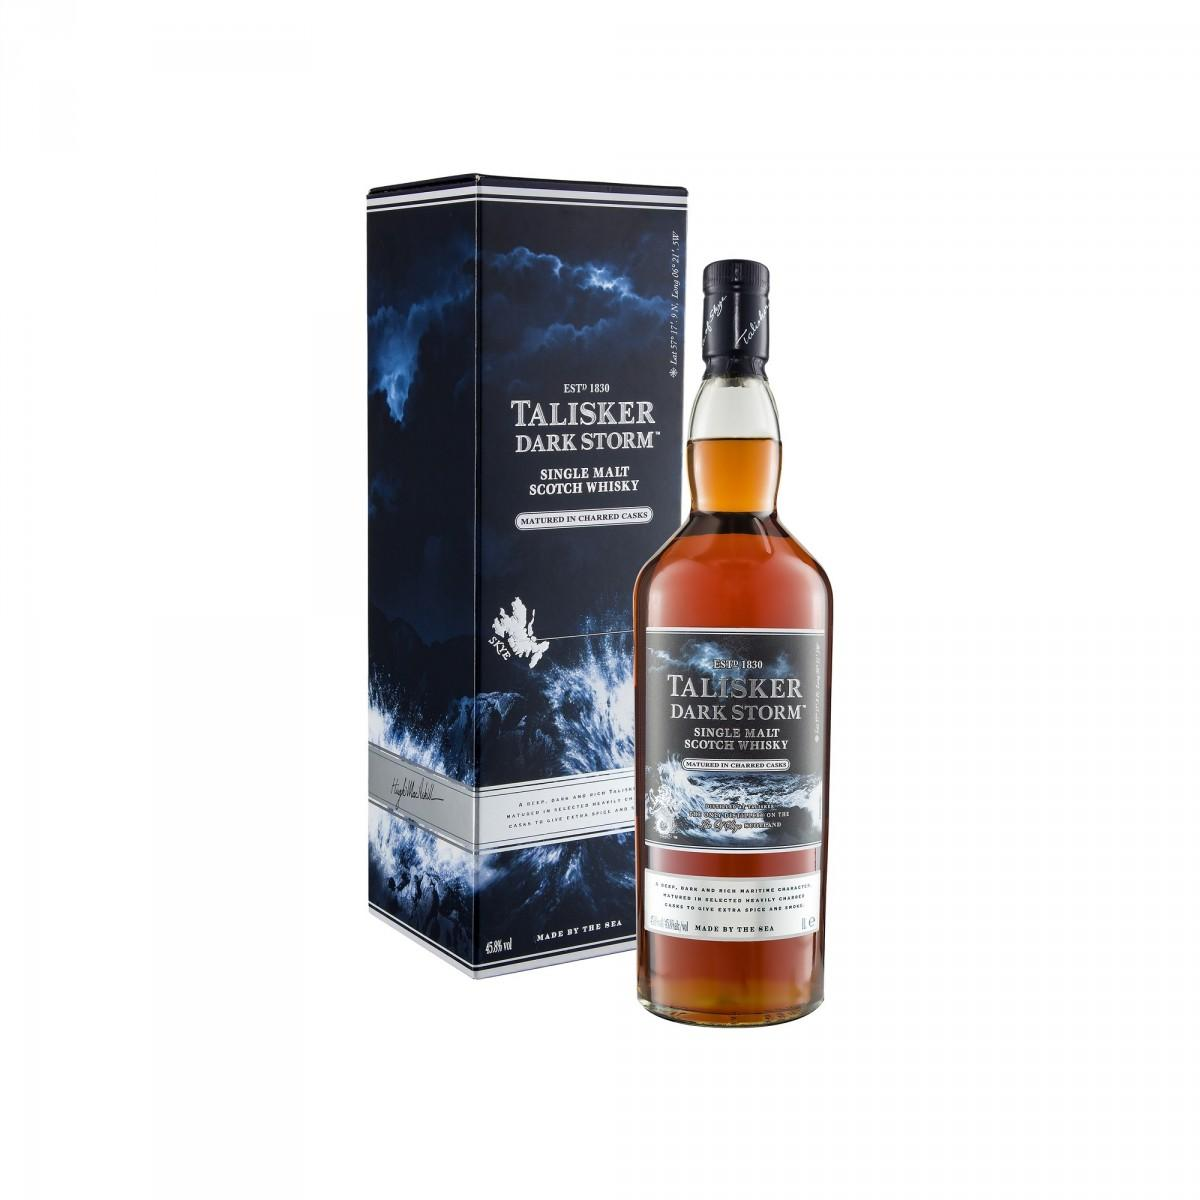 63572420f Talisker Dark Storm Single Malt Scotch Wisky - Aelia Duty Free